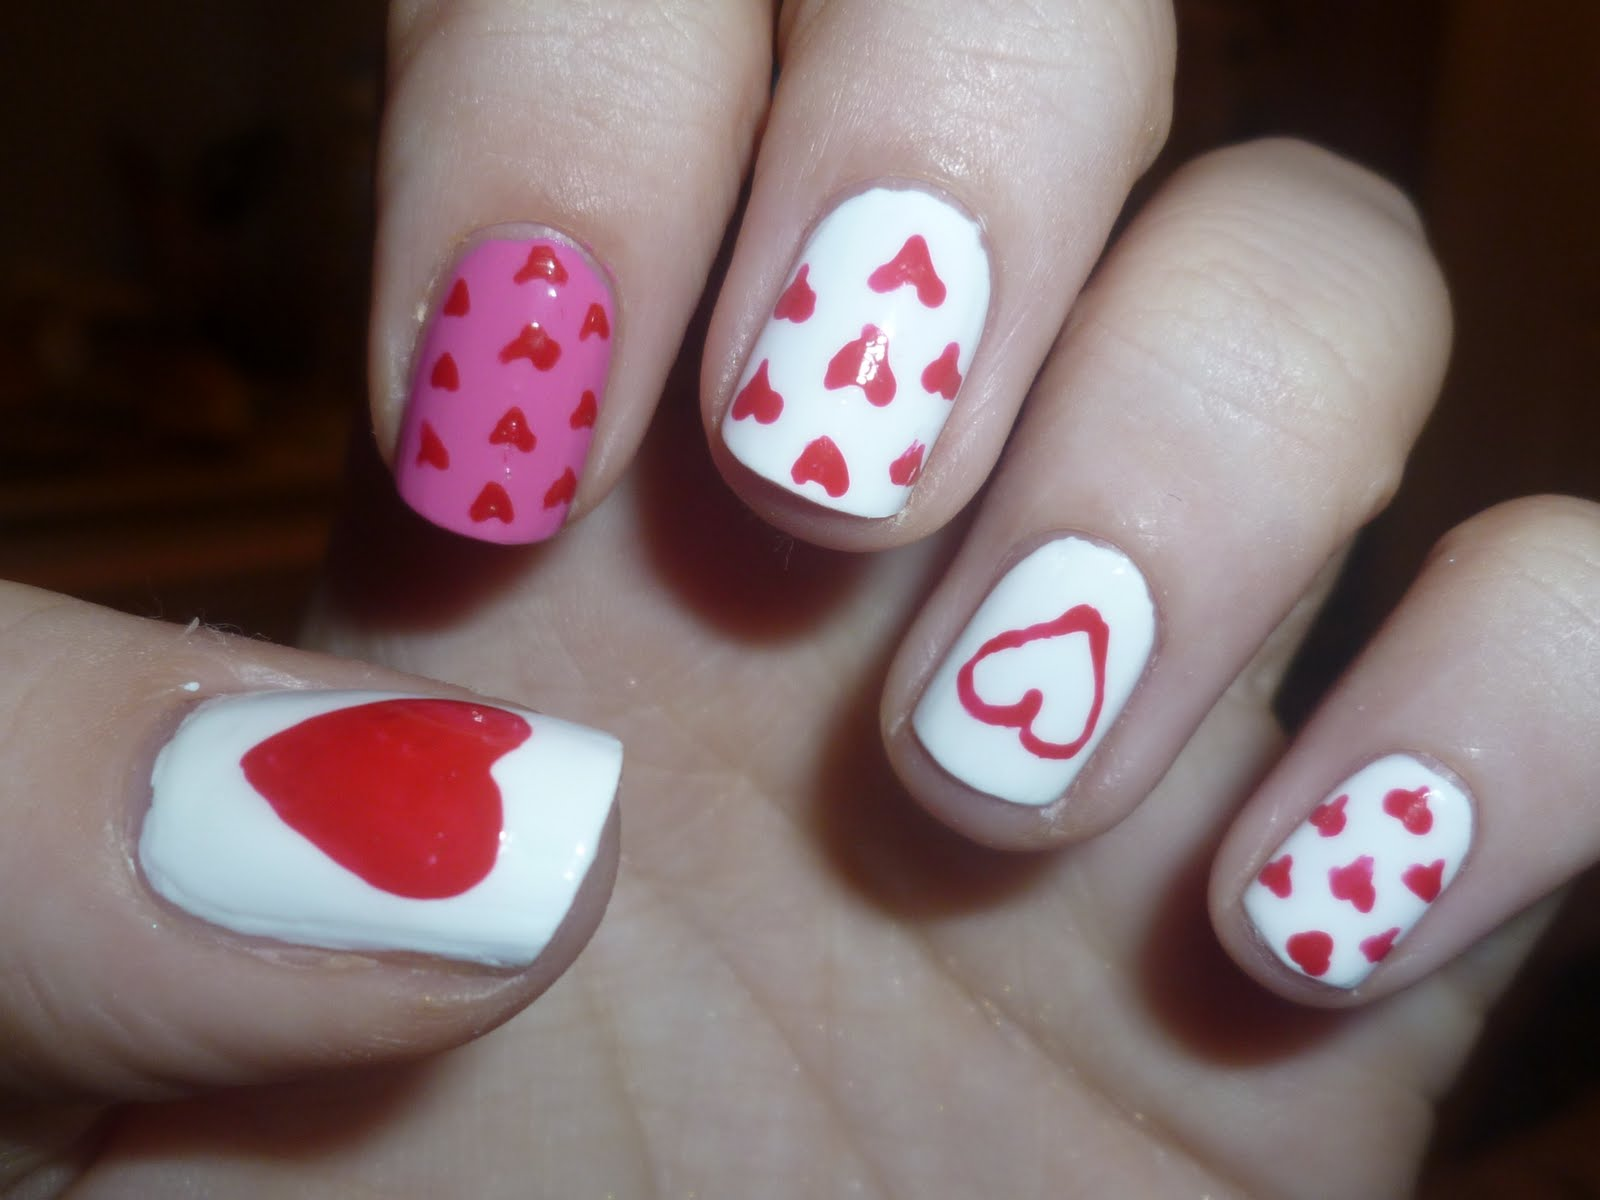 The Little Curly Girl Nail Art